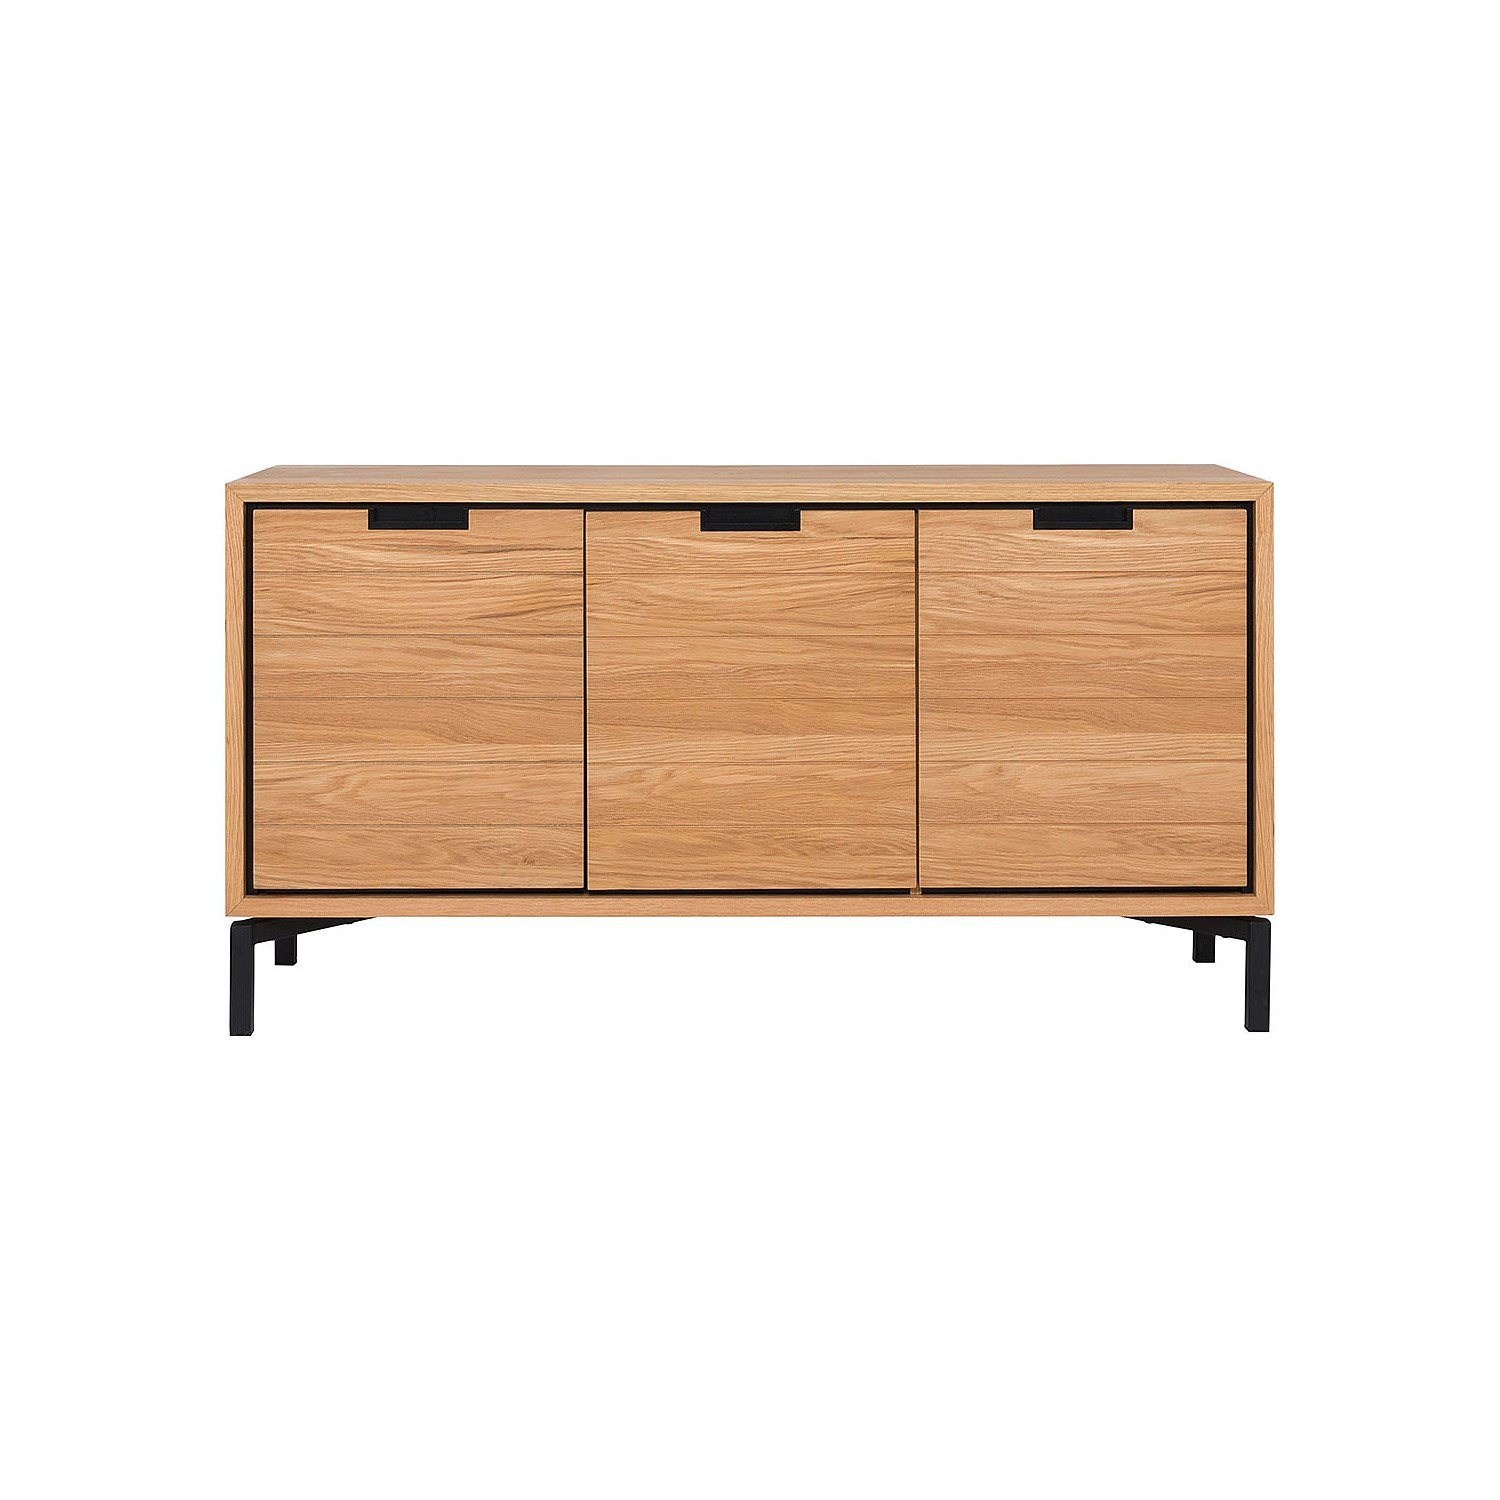 Buffets Atelier Buffet 3 Door 1 Drawer Extra Long Sideboard regarding Courtdale Sideboards (Image 9 of 30)